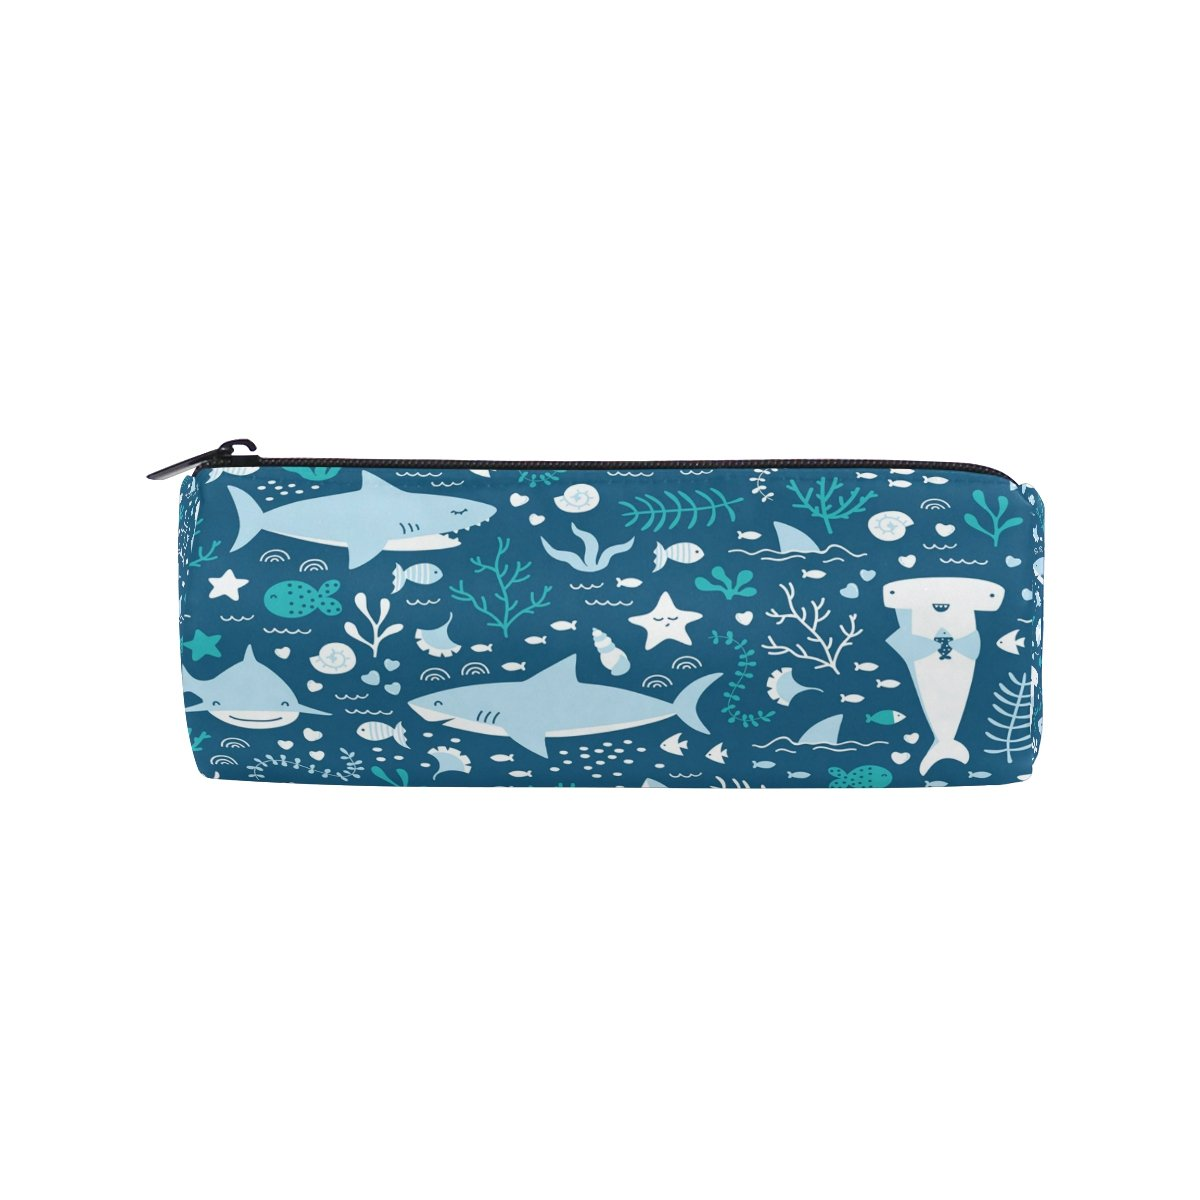 ALAZA Cartoon Blue Sharks with Sealife Animal Pencil Pen Case Pouch Bag with Zipper for Girls Kids School Student Stationery Office Supplies